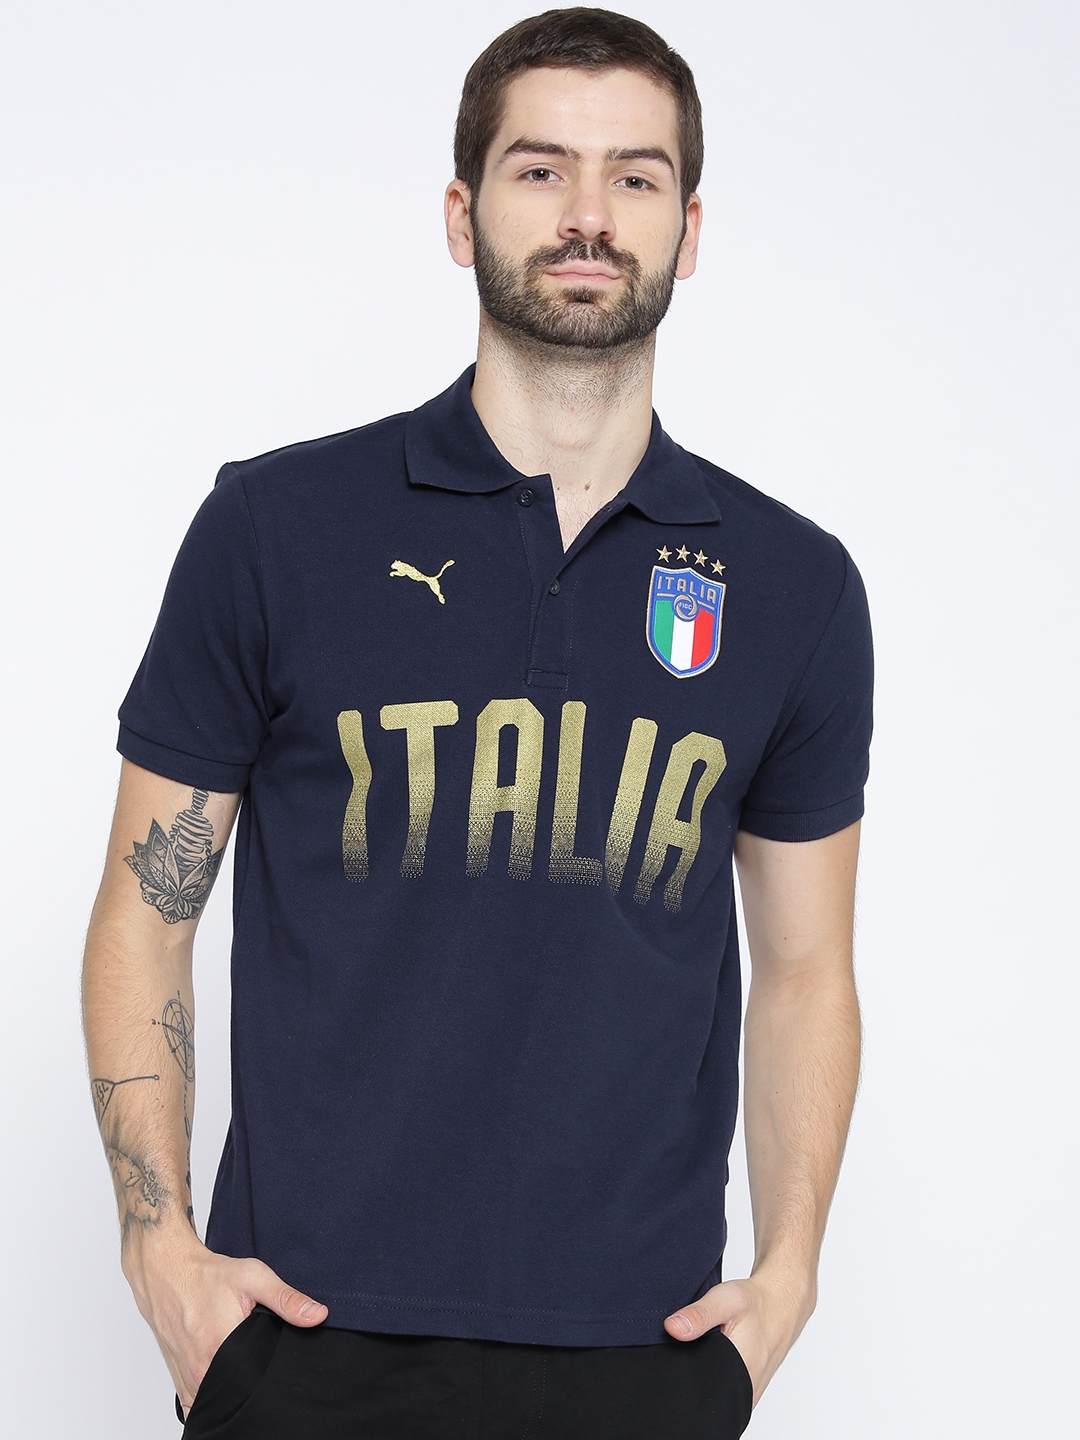 fd8921bee843 Buy Puma Navy FIGC Italia Fanwear Polo Printed Football T Shirt ...